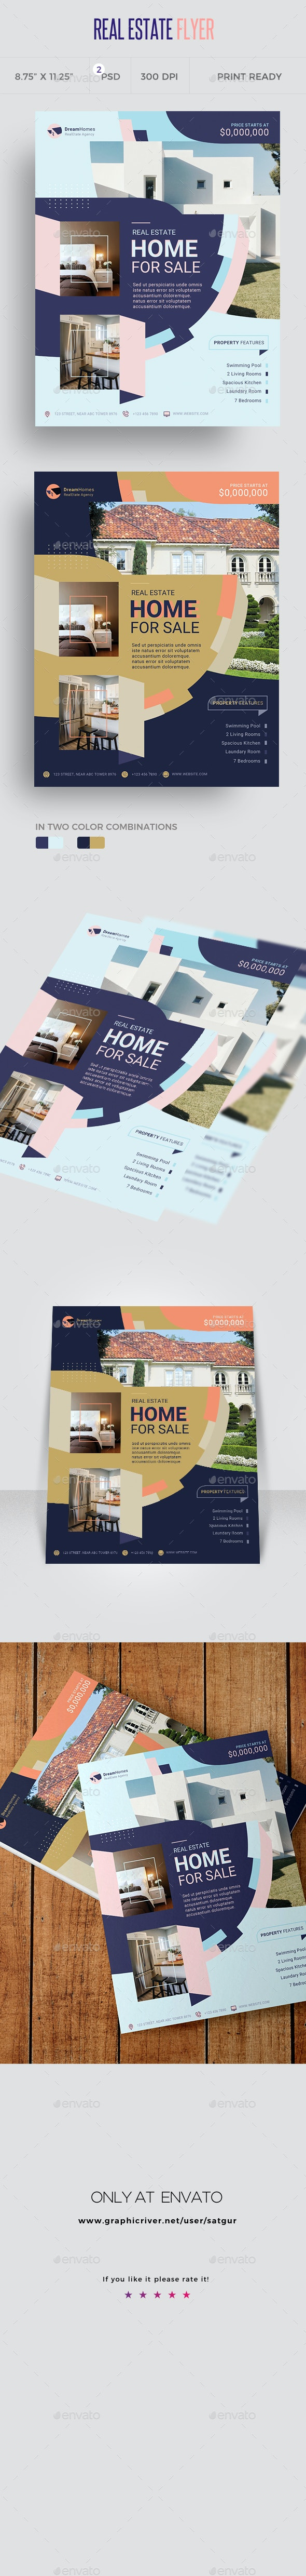 Real Estate Flyer Template - Commerce Flyers